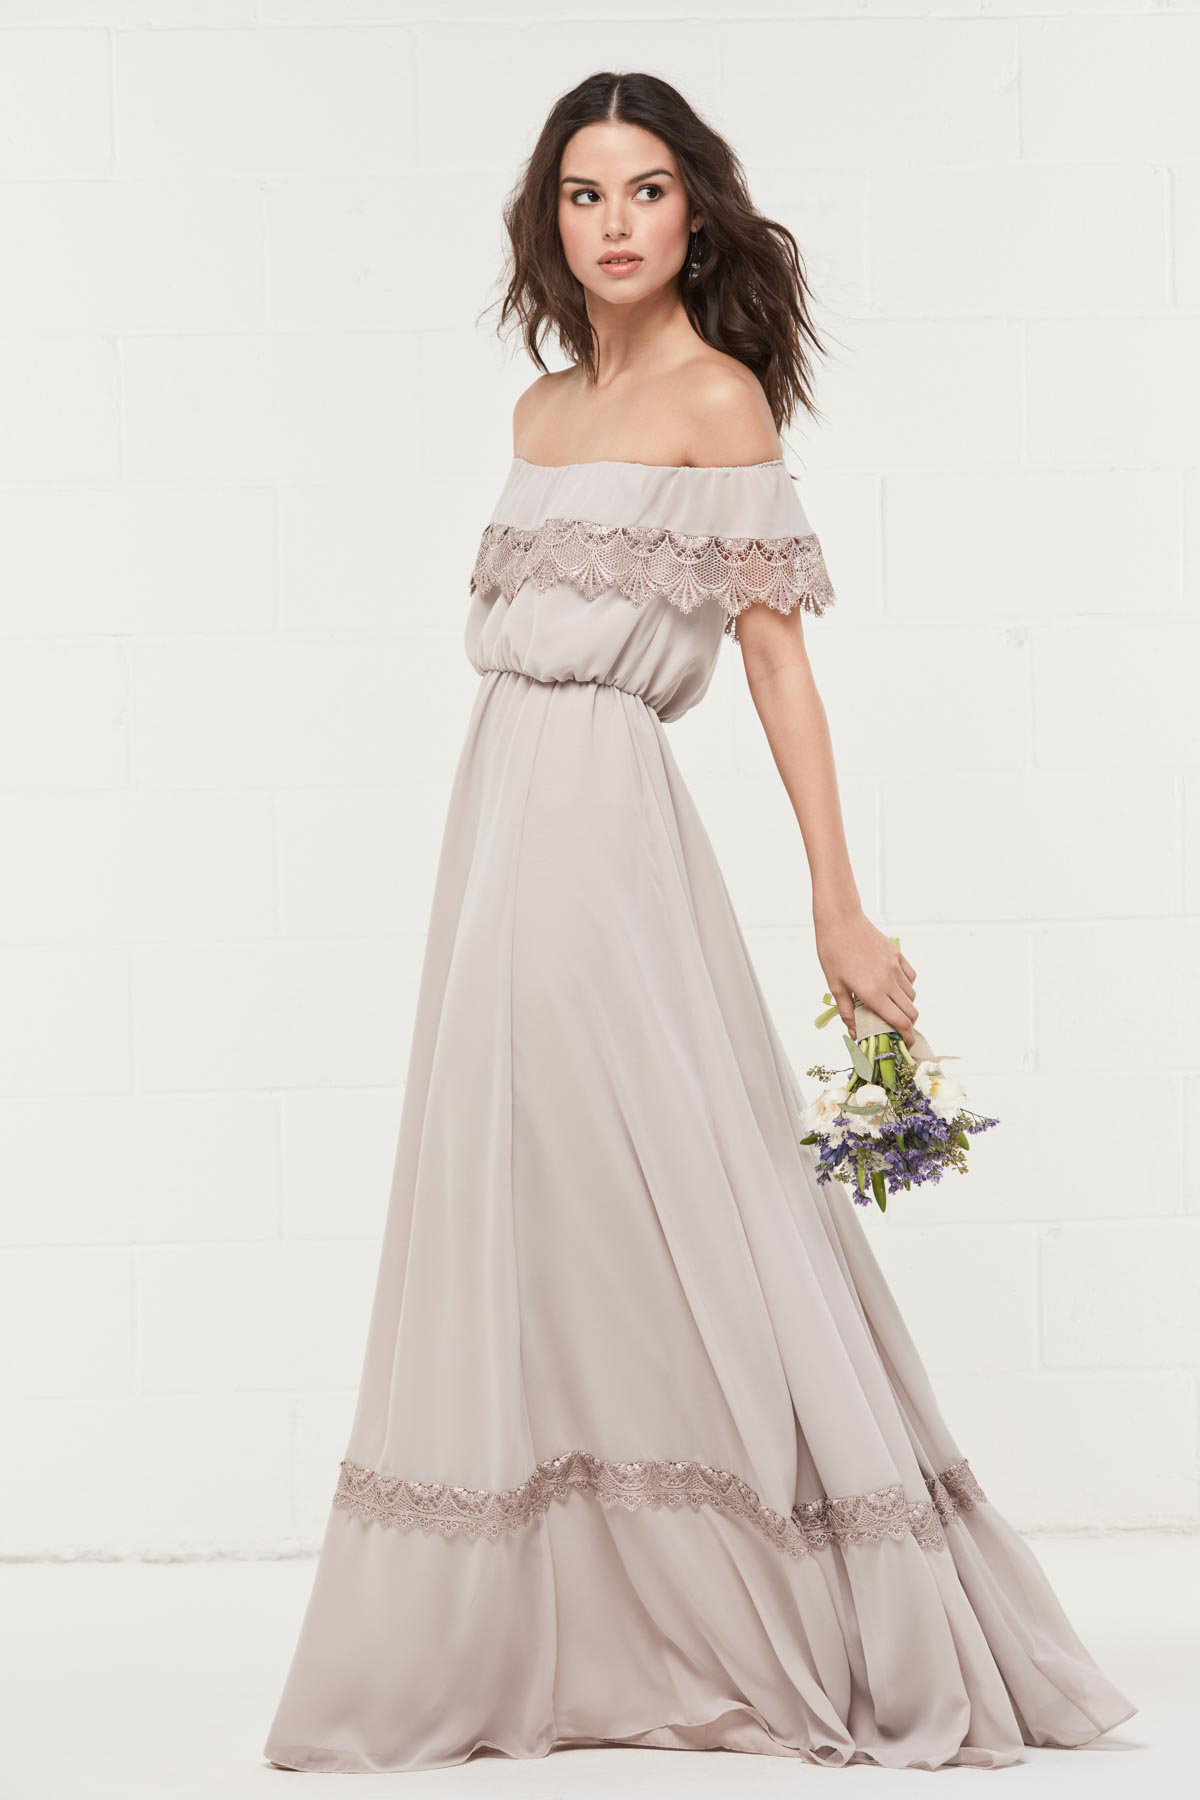 407 Bridesmaids Dress By Watters